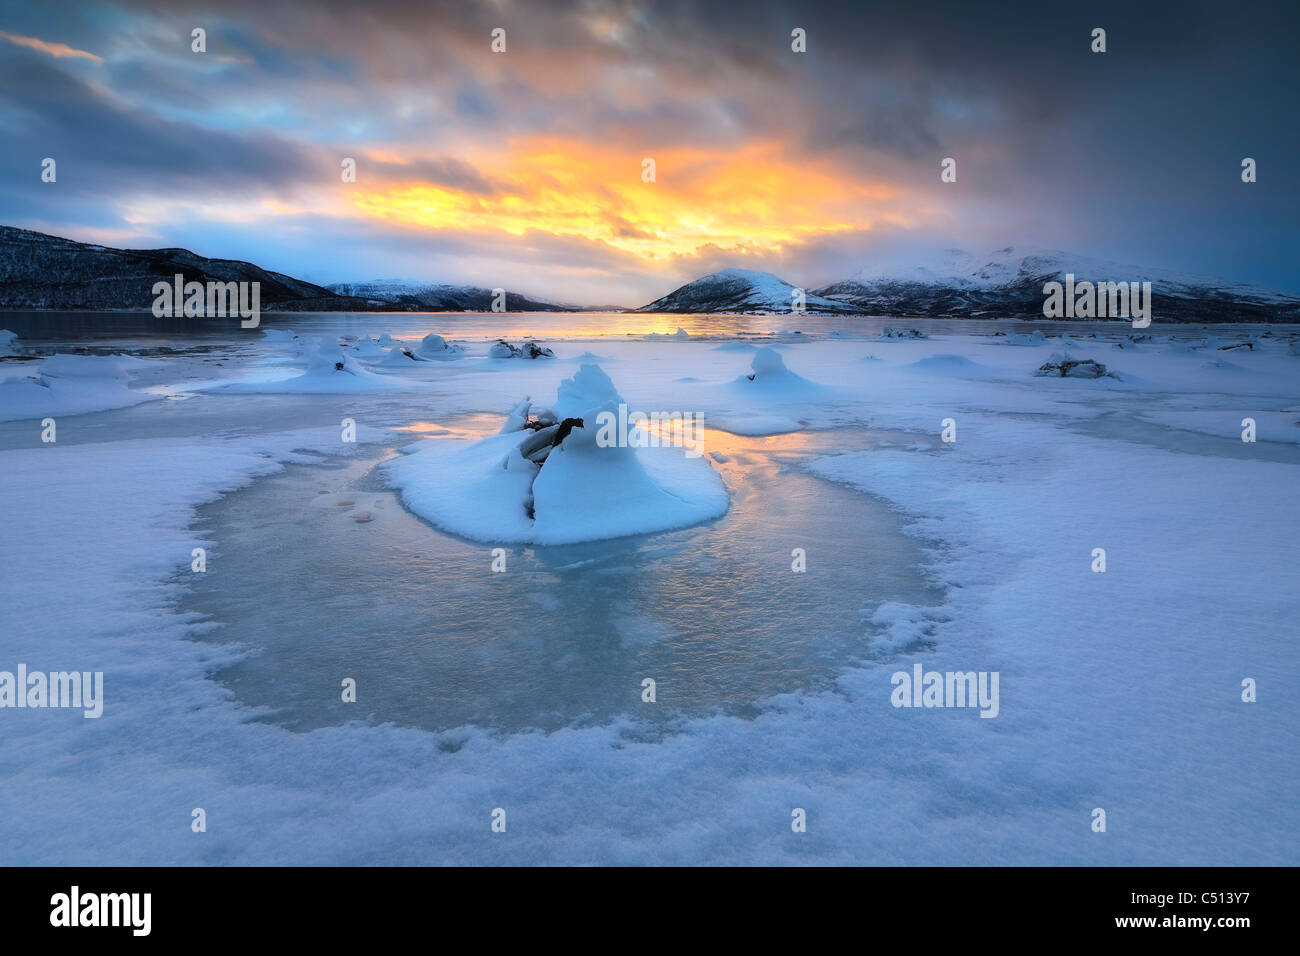 A frozen fjord that is part of Tjeldsundet strait in Troms County, Norway. Sætertinden mountain is in the background. - Stock Image